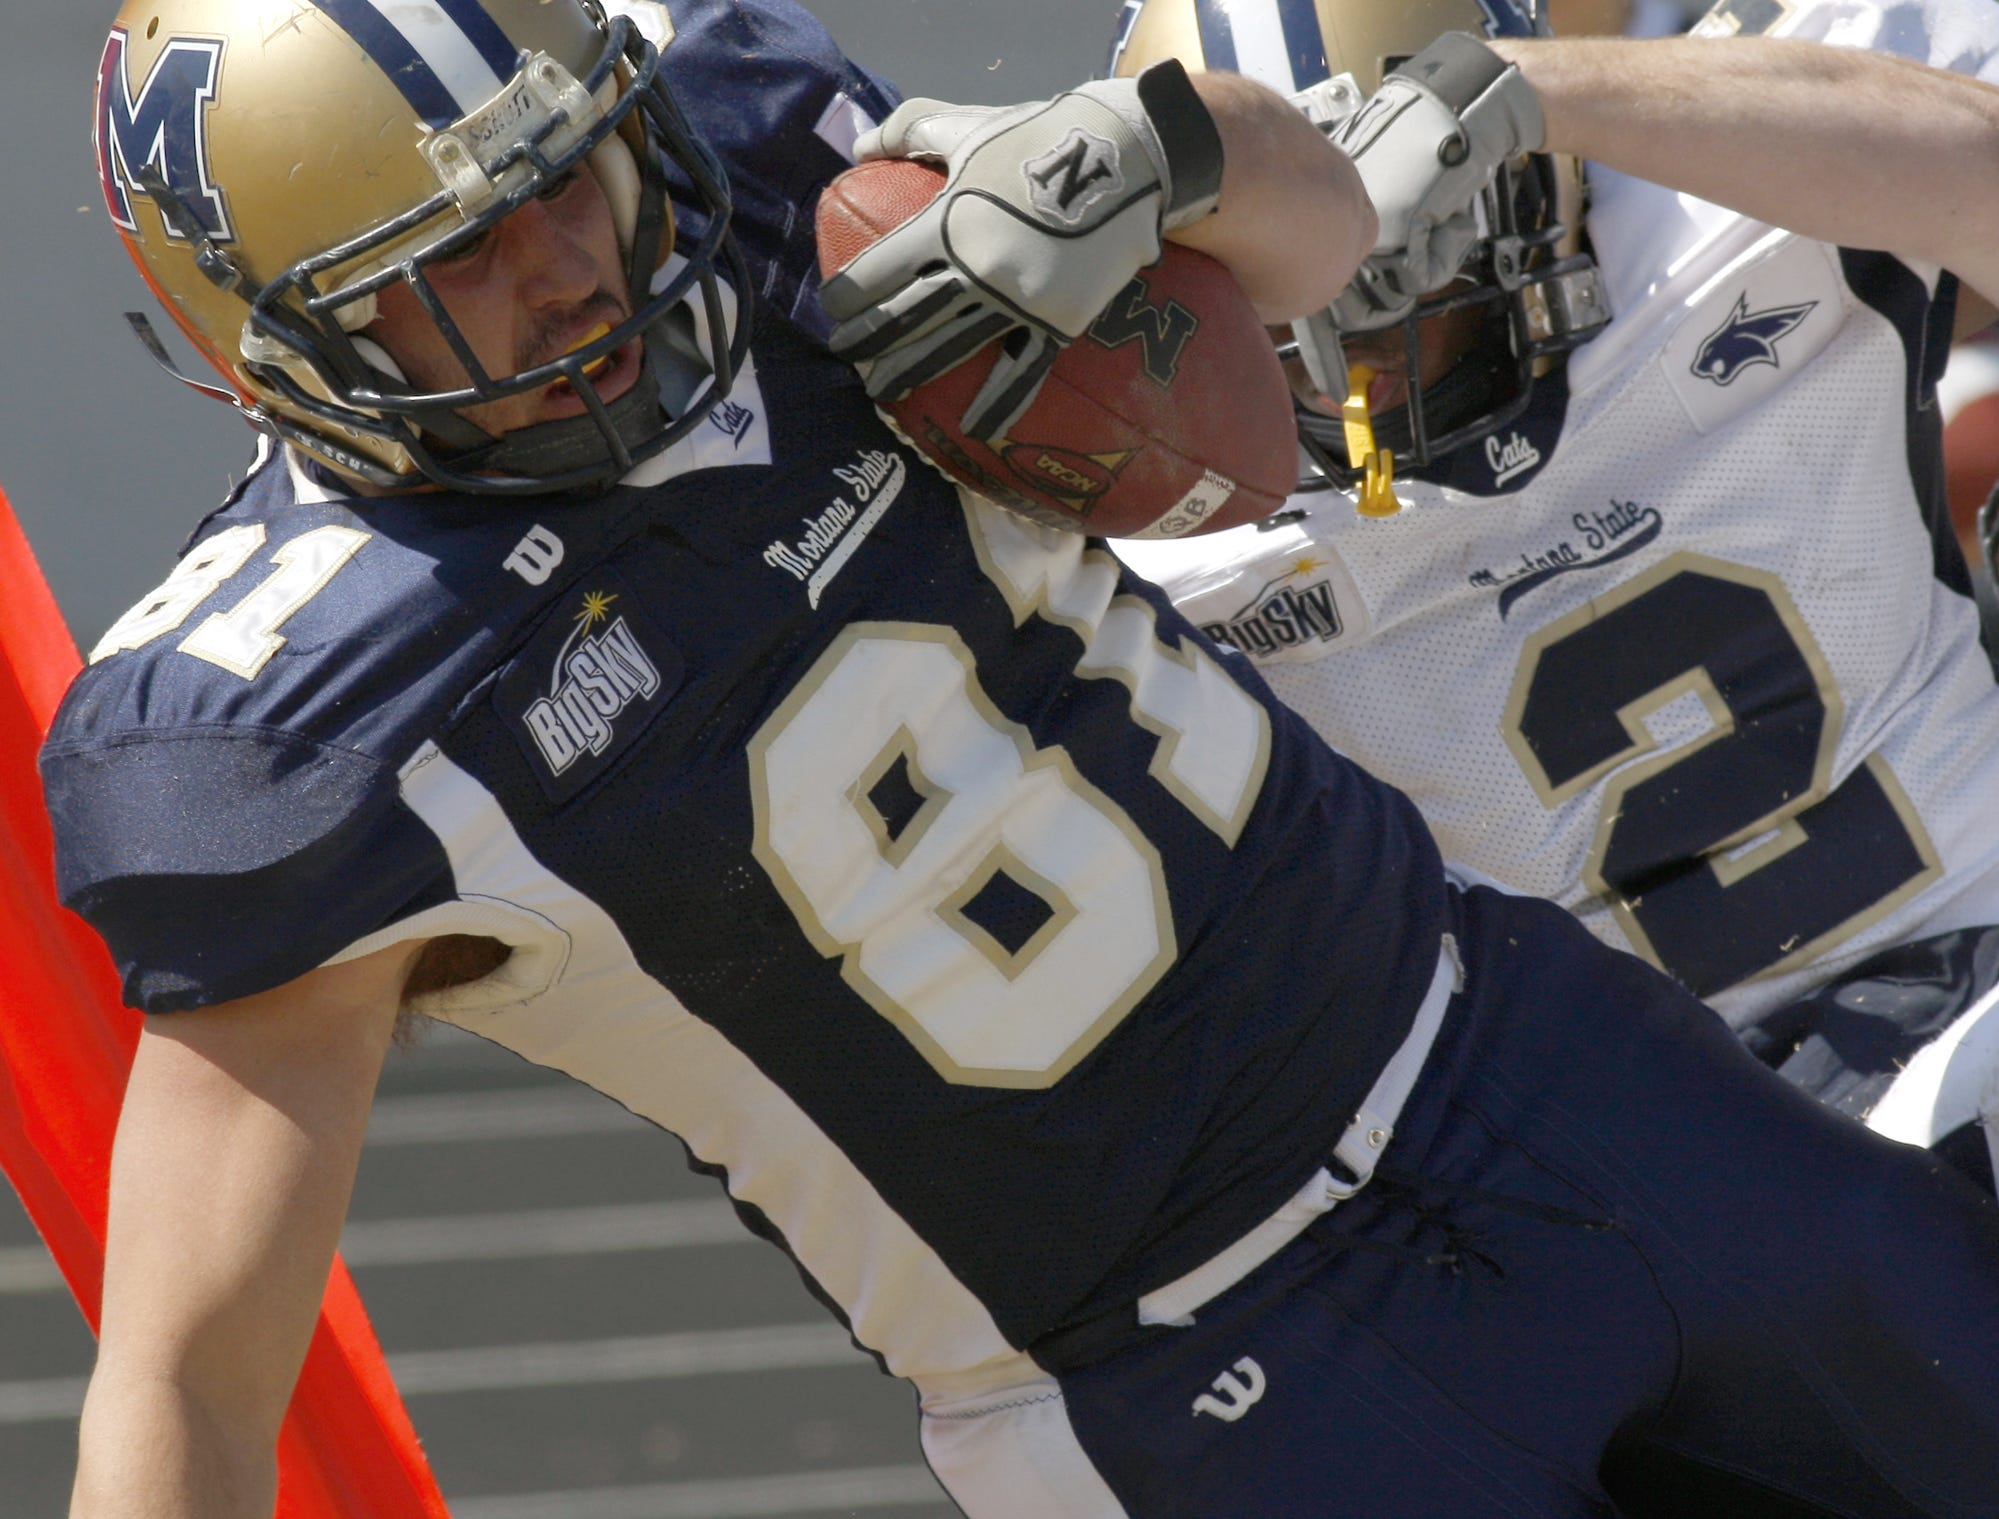 Kyle Begger (81) is tackled after making a catch by David Taylor (2) near the end zone during Montana State Universities Triangle Classic scrimmage Saturday at Memorial Stadium.